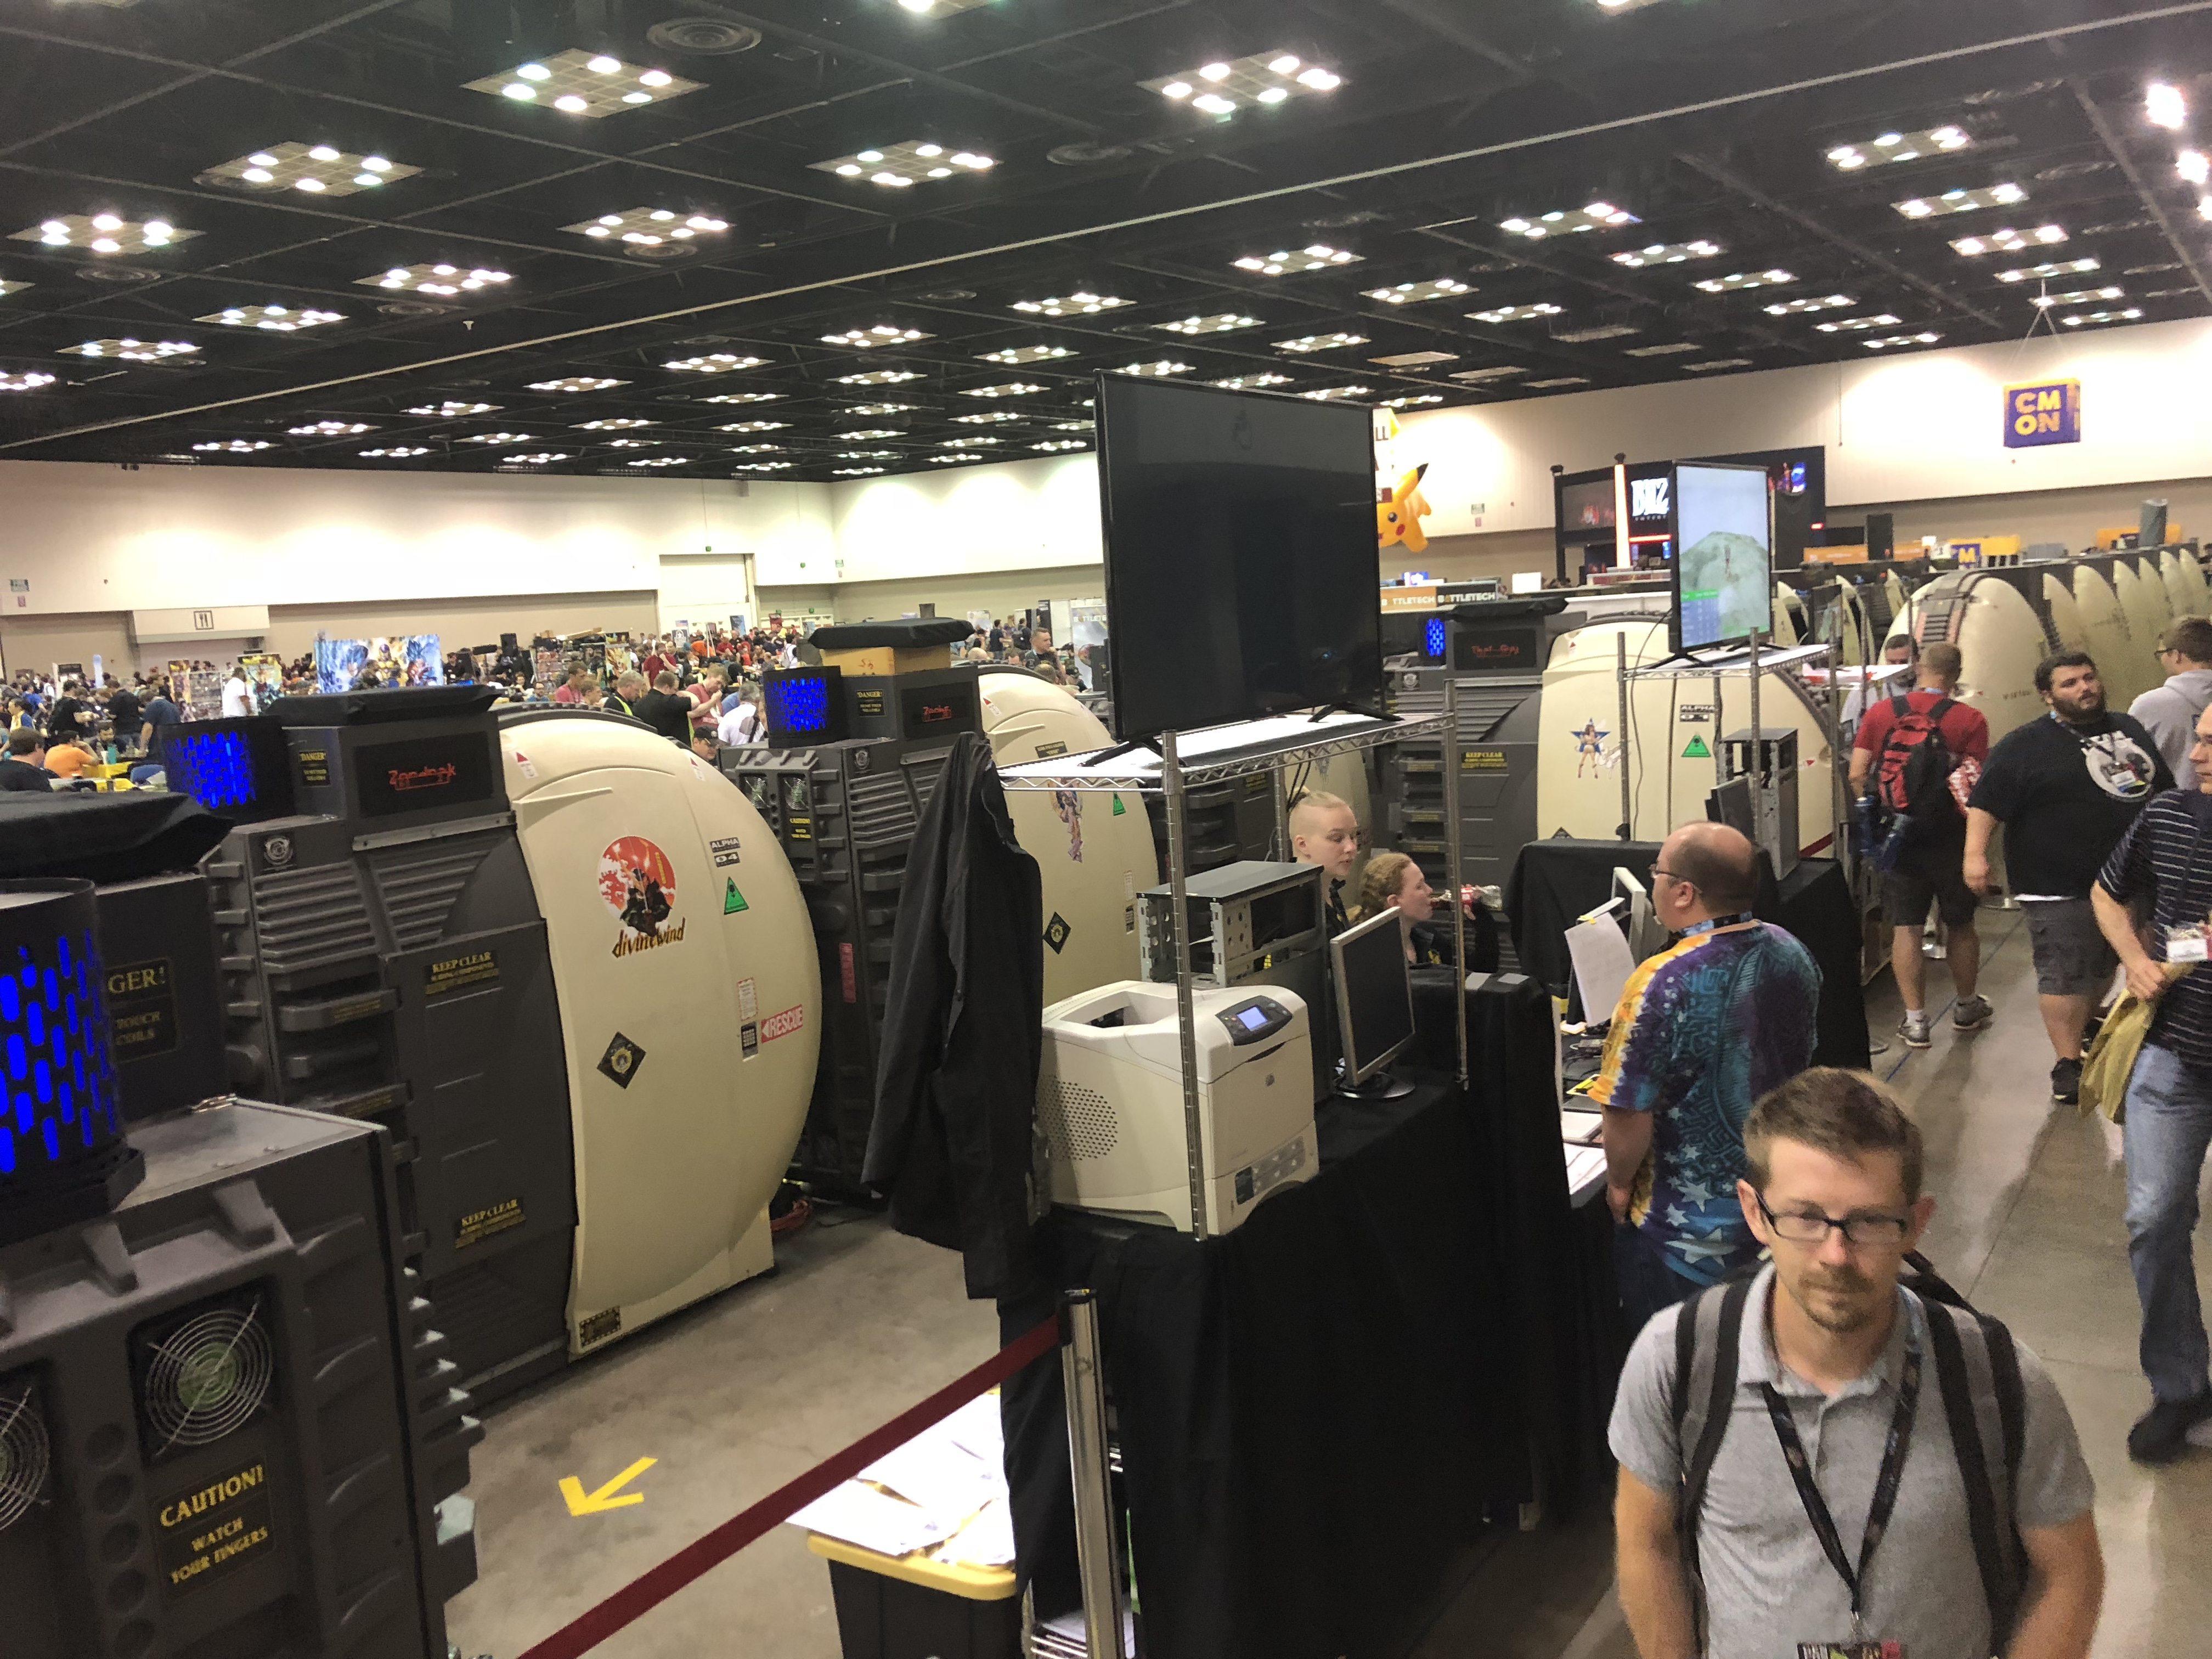 21 pods sighted at GenCon Indy